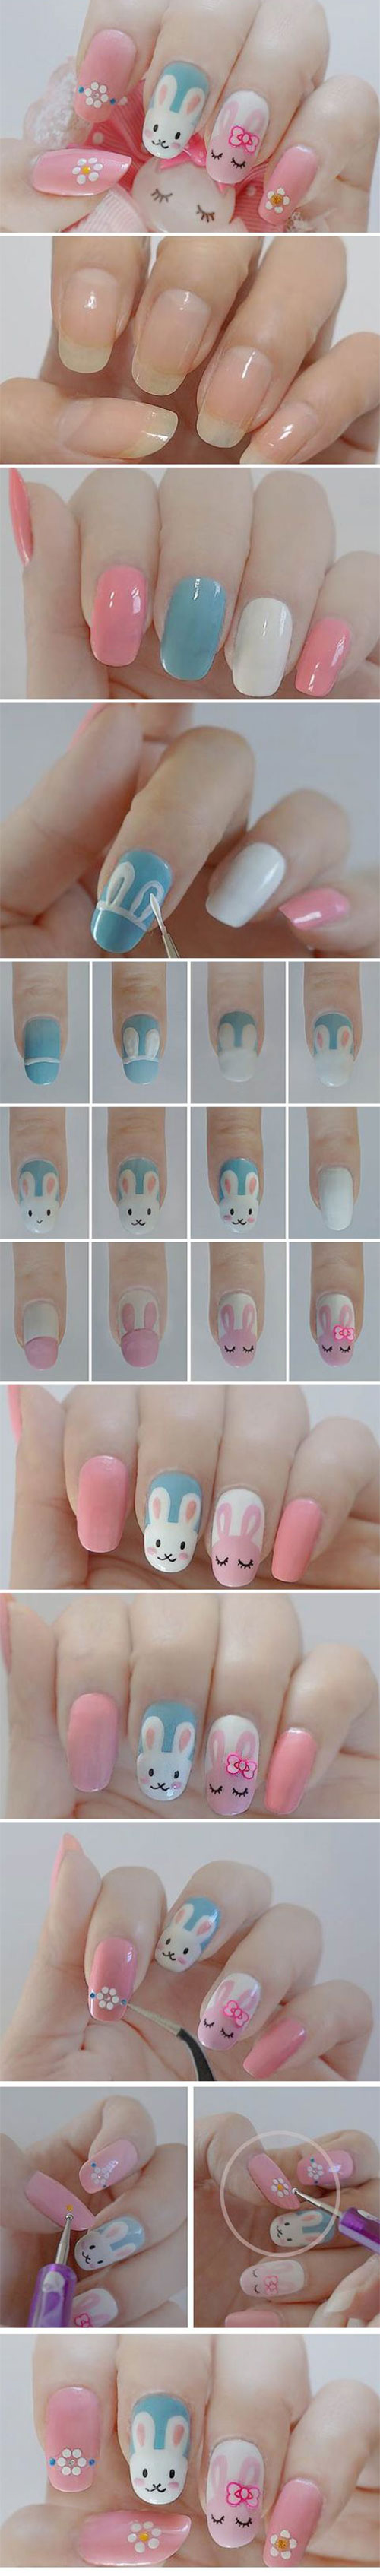 10-Step-By-Step-Easter-Nail-Art-Tutorials-For-Beginners-Learners-2015-9